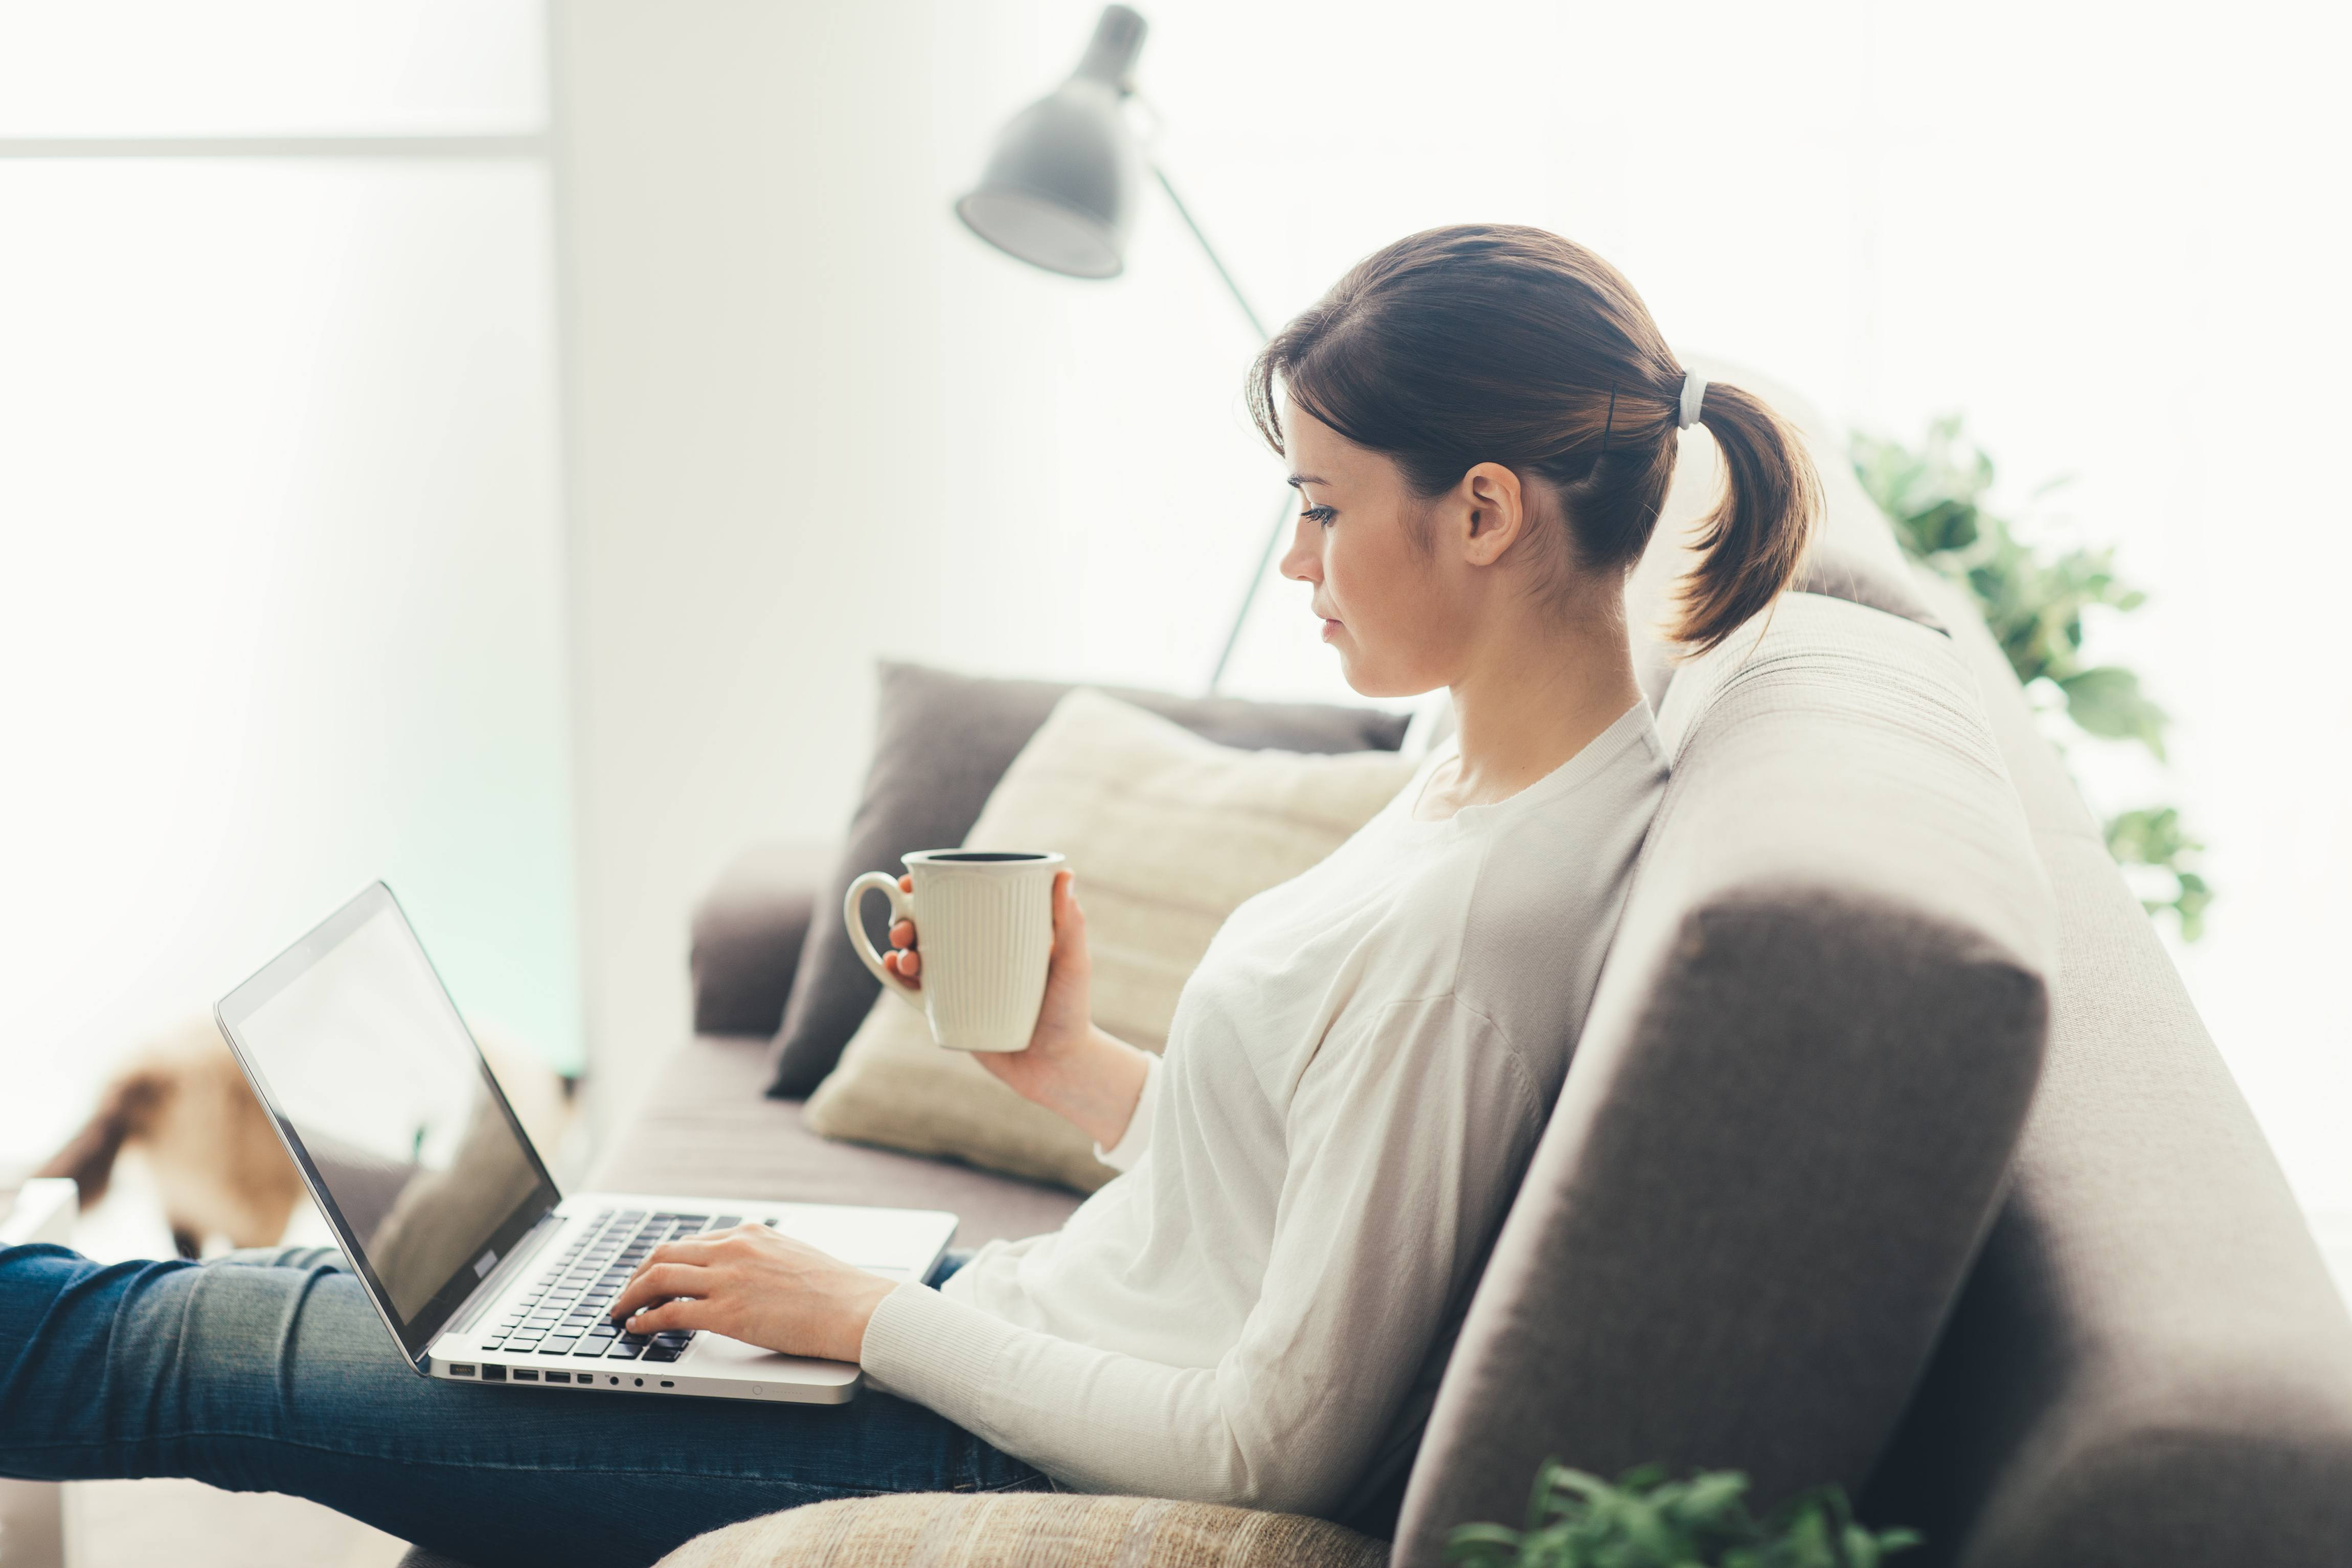 a side view of a young woman sitting on a couch with a cup in her hand, looking at a laptop screen